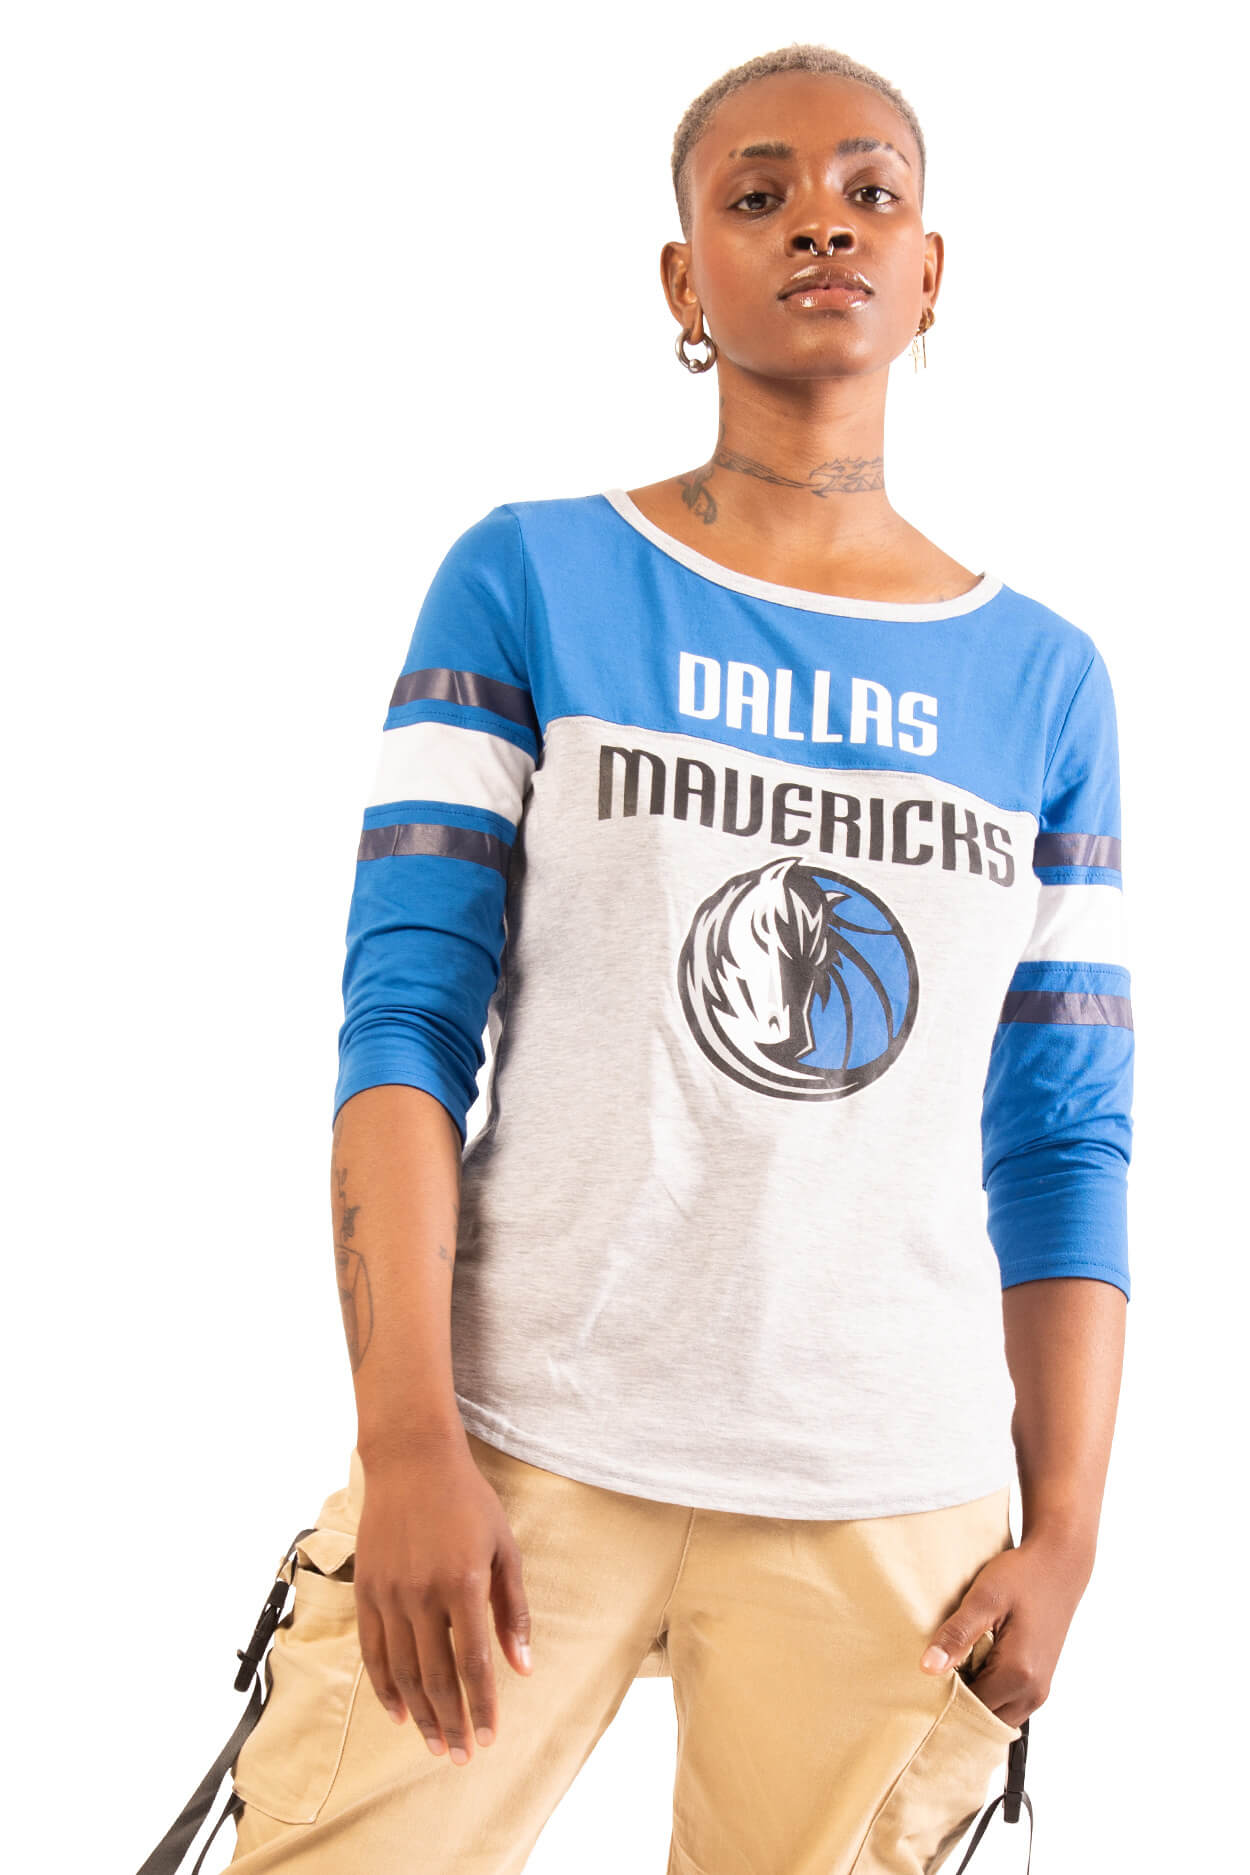 NBA Dallas Mavericks Women's Baseball Tee|Dallas Mavericks